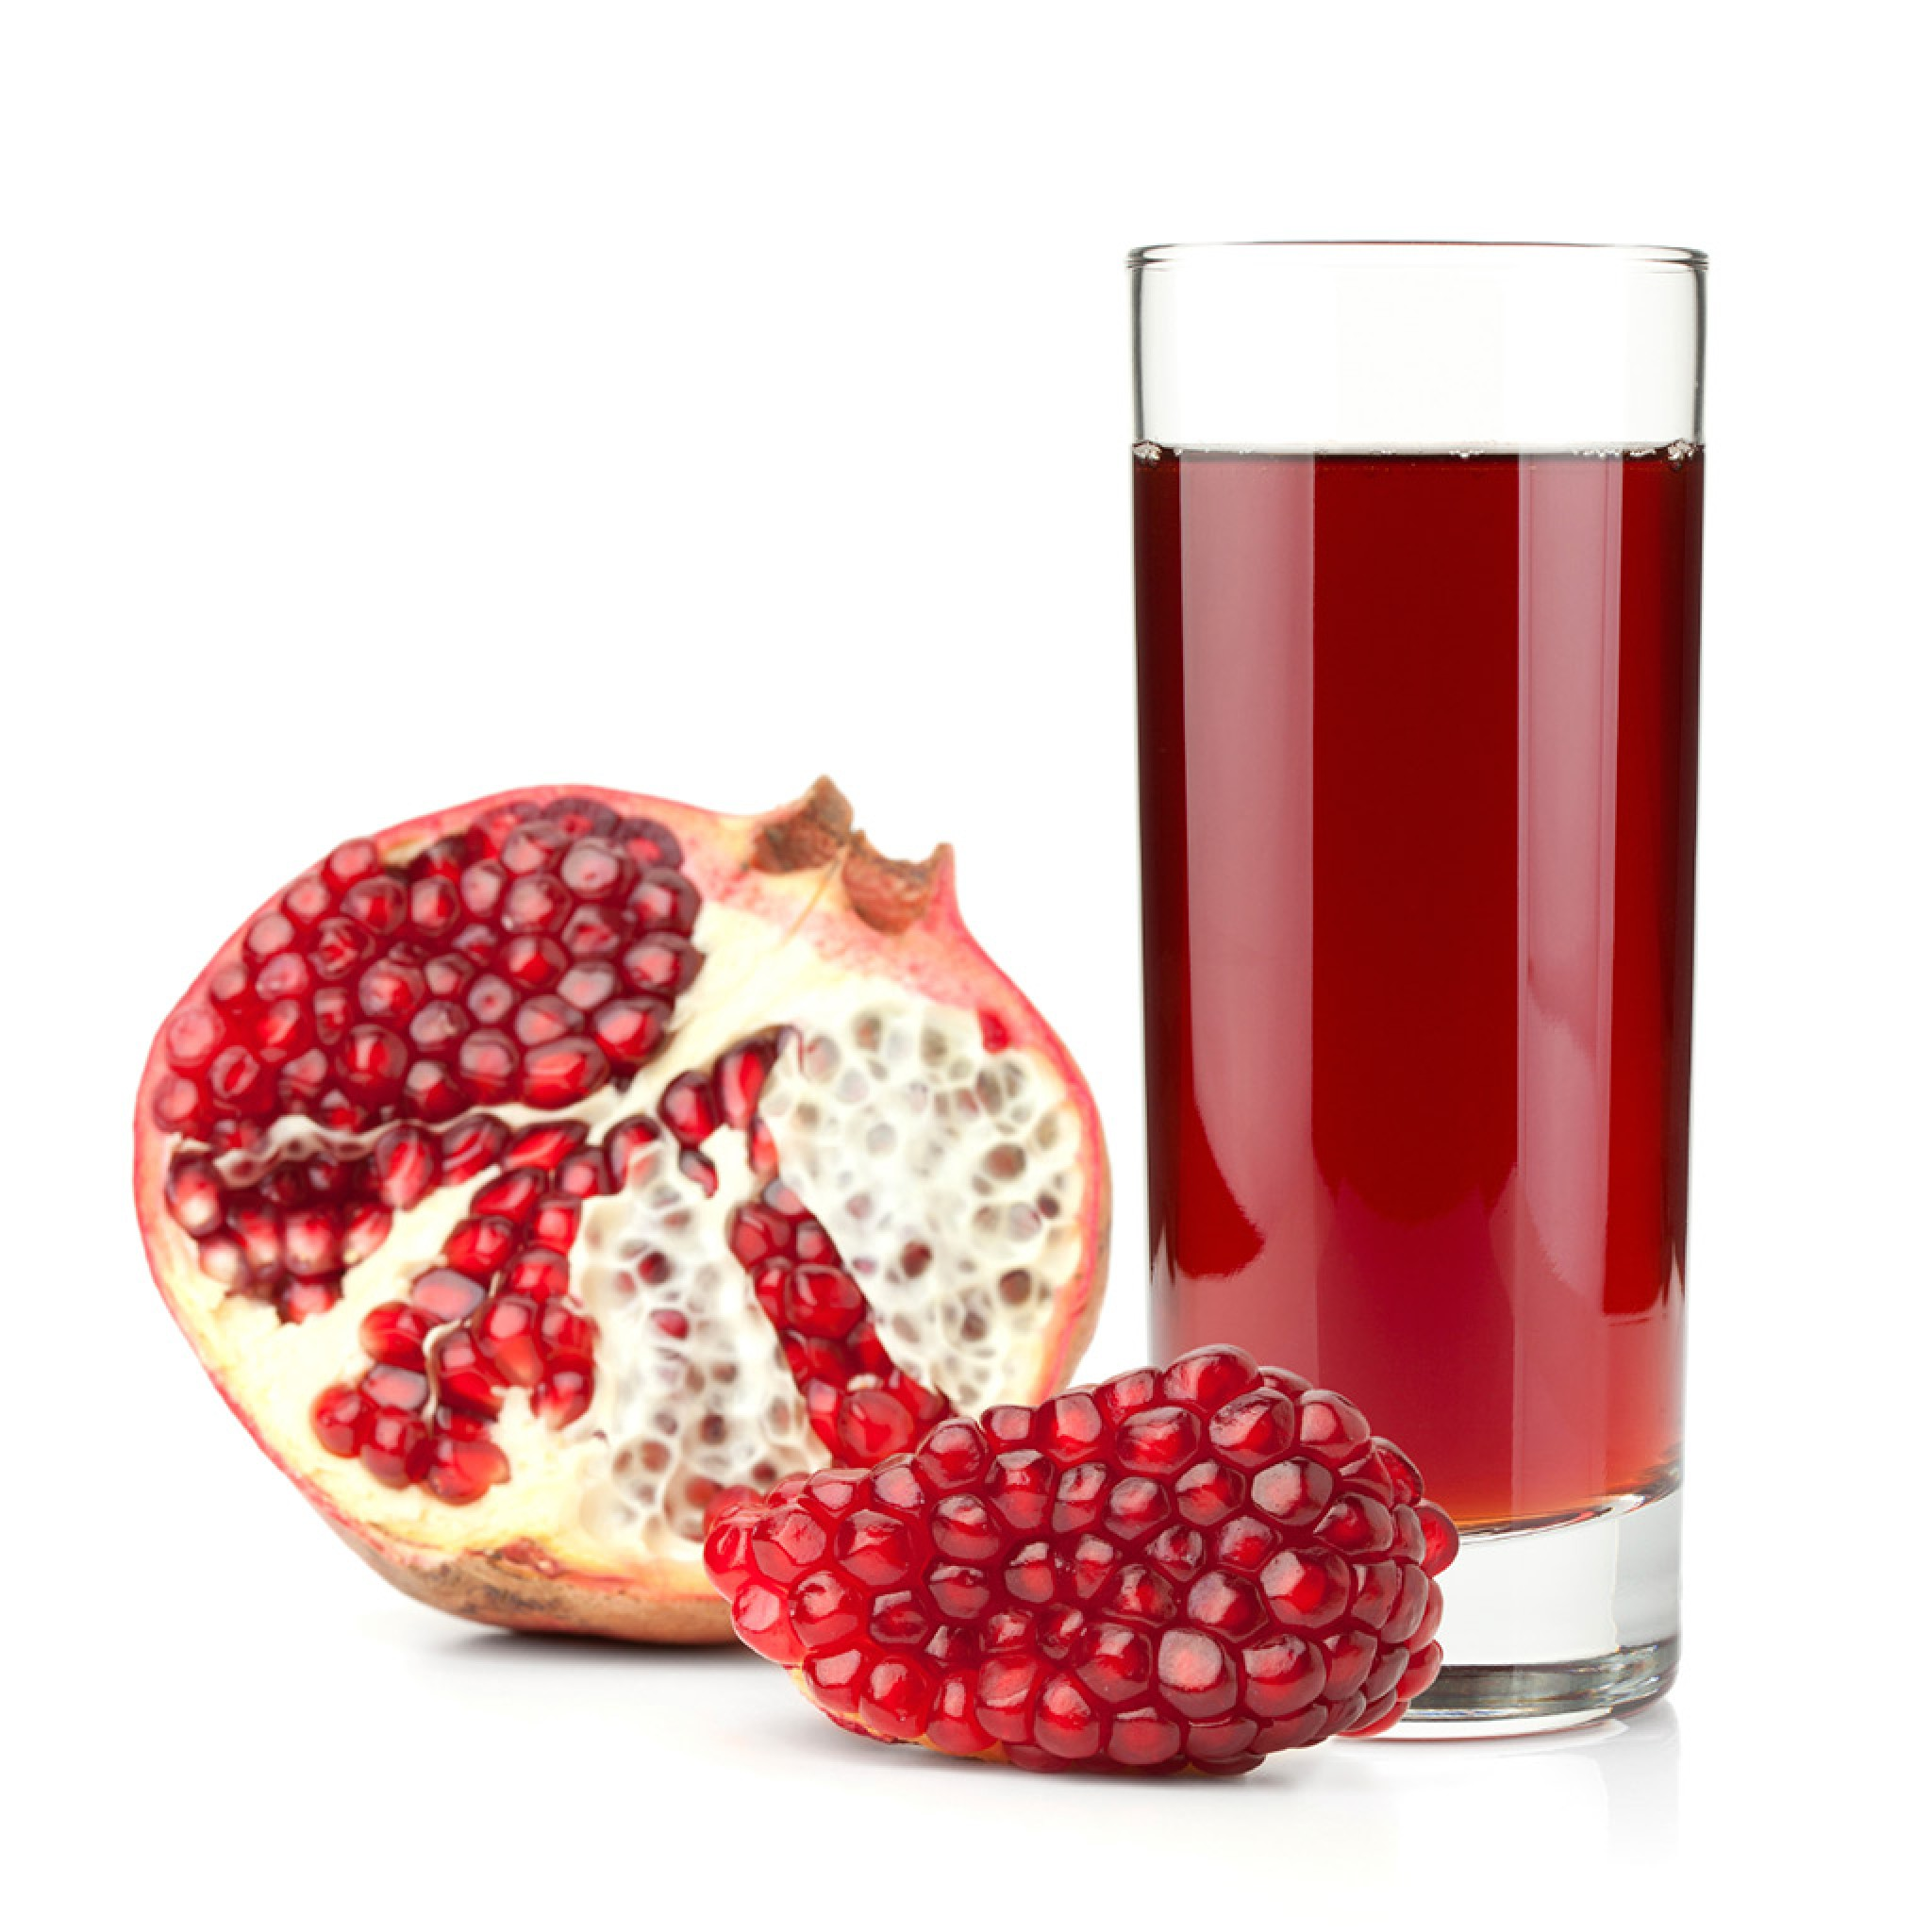 The virtues of the pomegranate 2